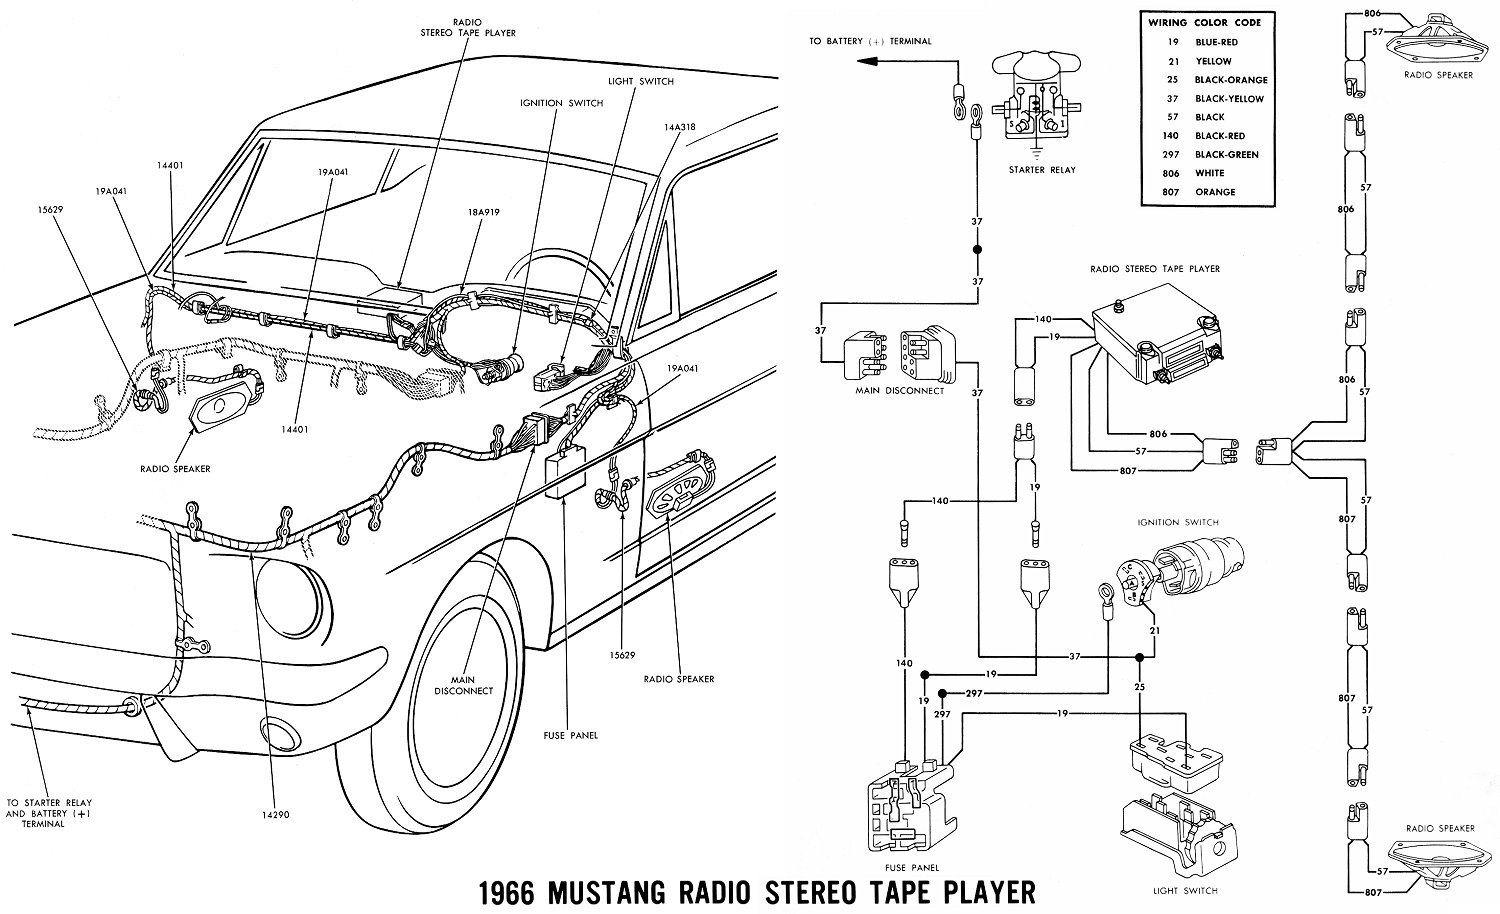 1966 mustang electrical diagrams 1966 mustang wiring diagrams - average joe restoration 1966 ford mustang electrical wiring diagrams #4